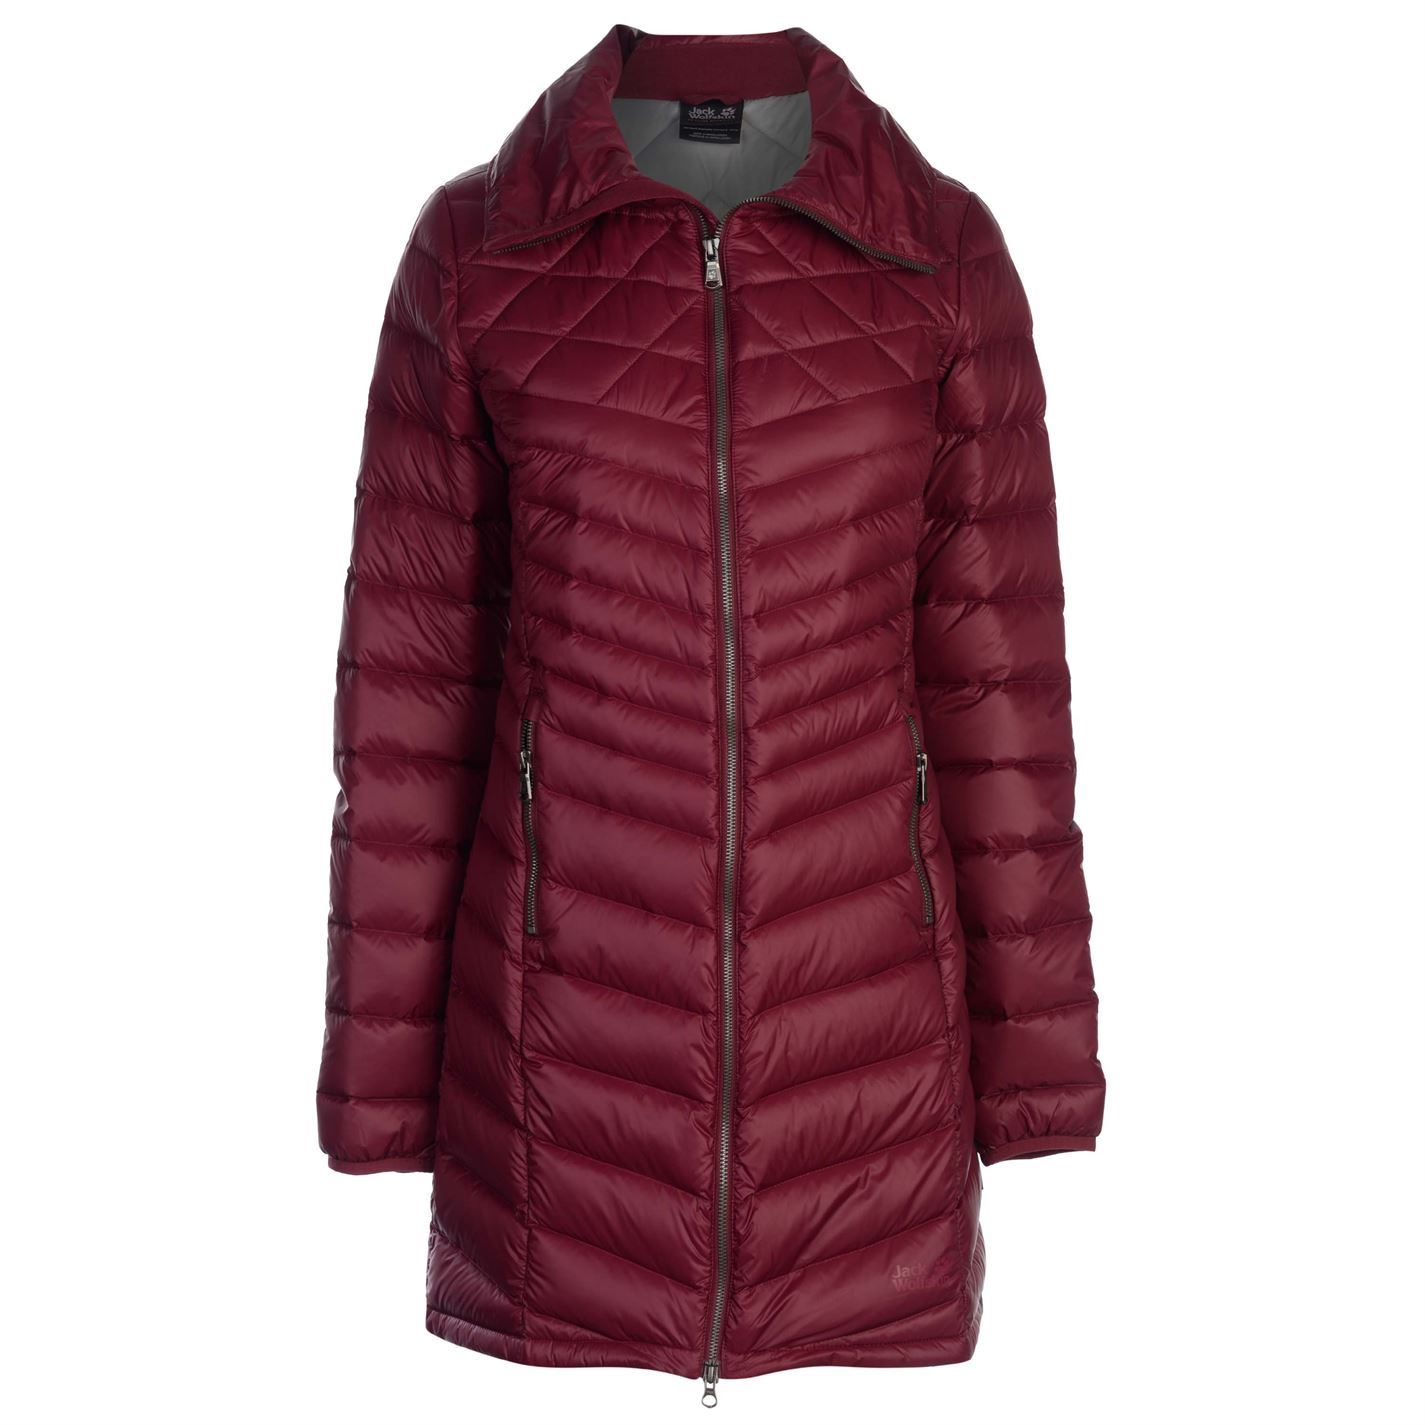 09dd33ee1b Details about Jack Wolfskin Womens Richmond Down Coat Duffle Top Jacket  Windproof Breathable